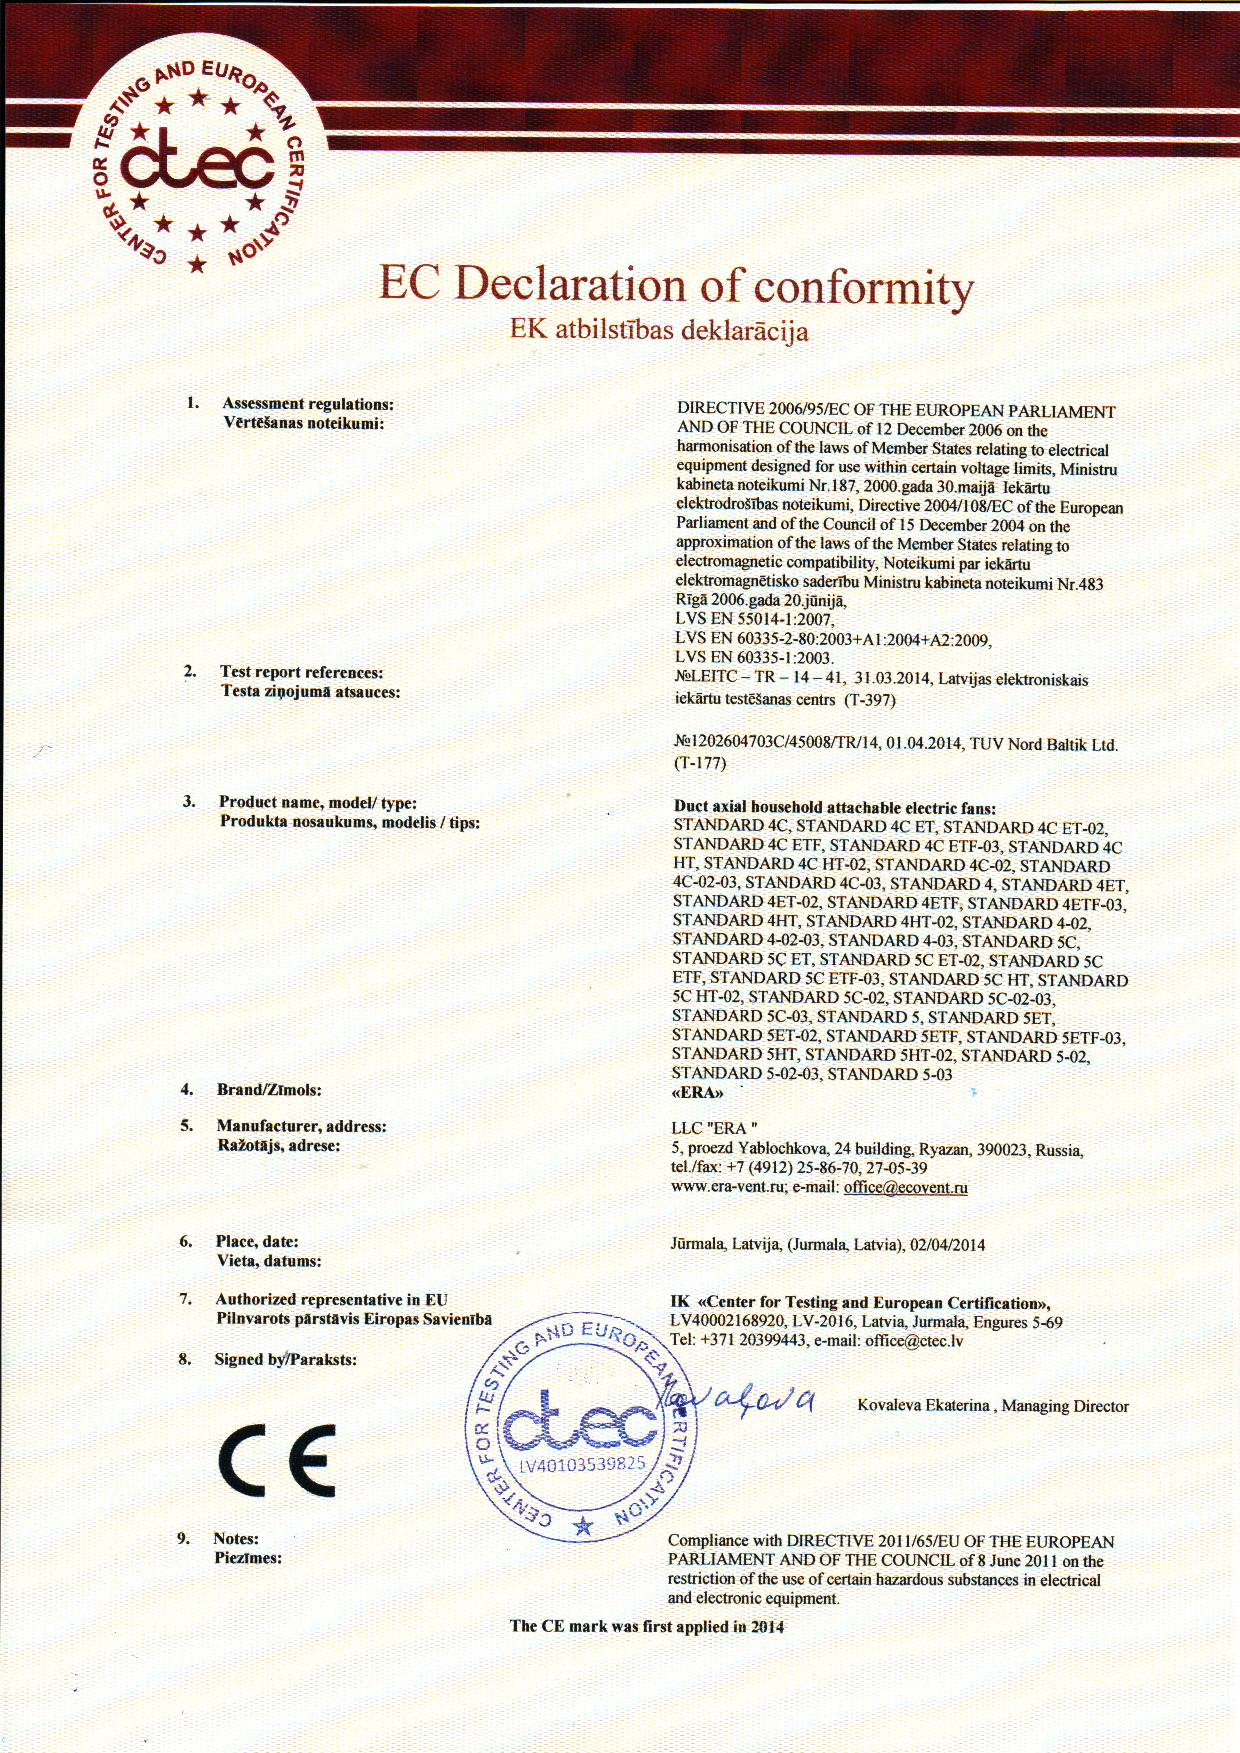 EC-Declaration-of-Compliance.